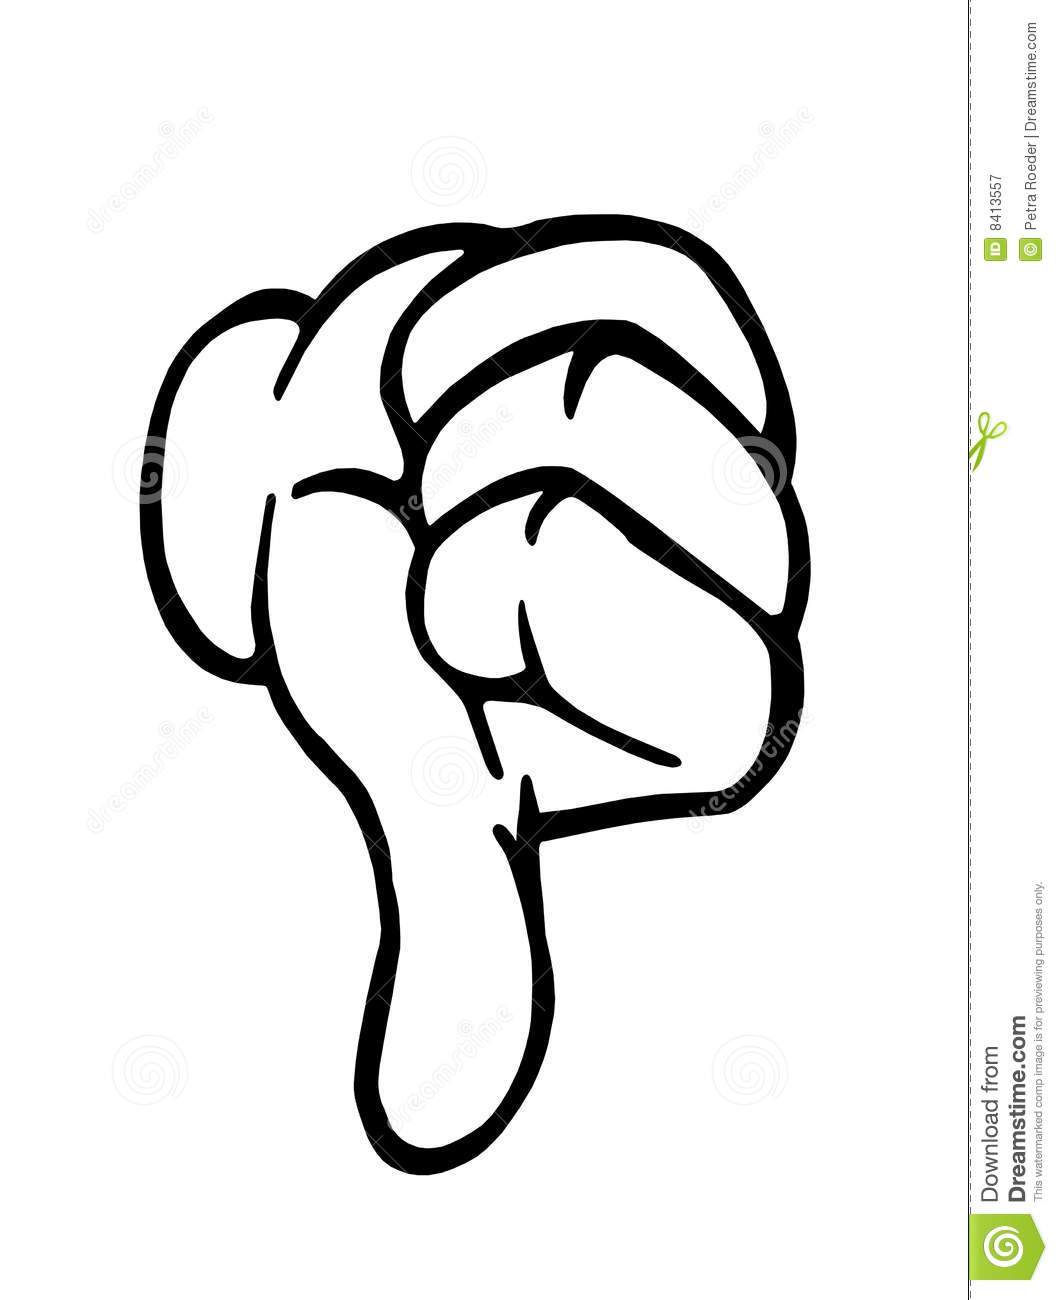 Thumbs down outline clipart image free stock Thumbs Down Royalty Free Stock Photography - Image: 8413557 image free stock